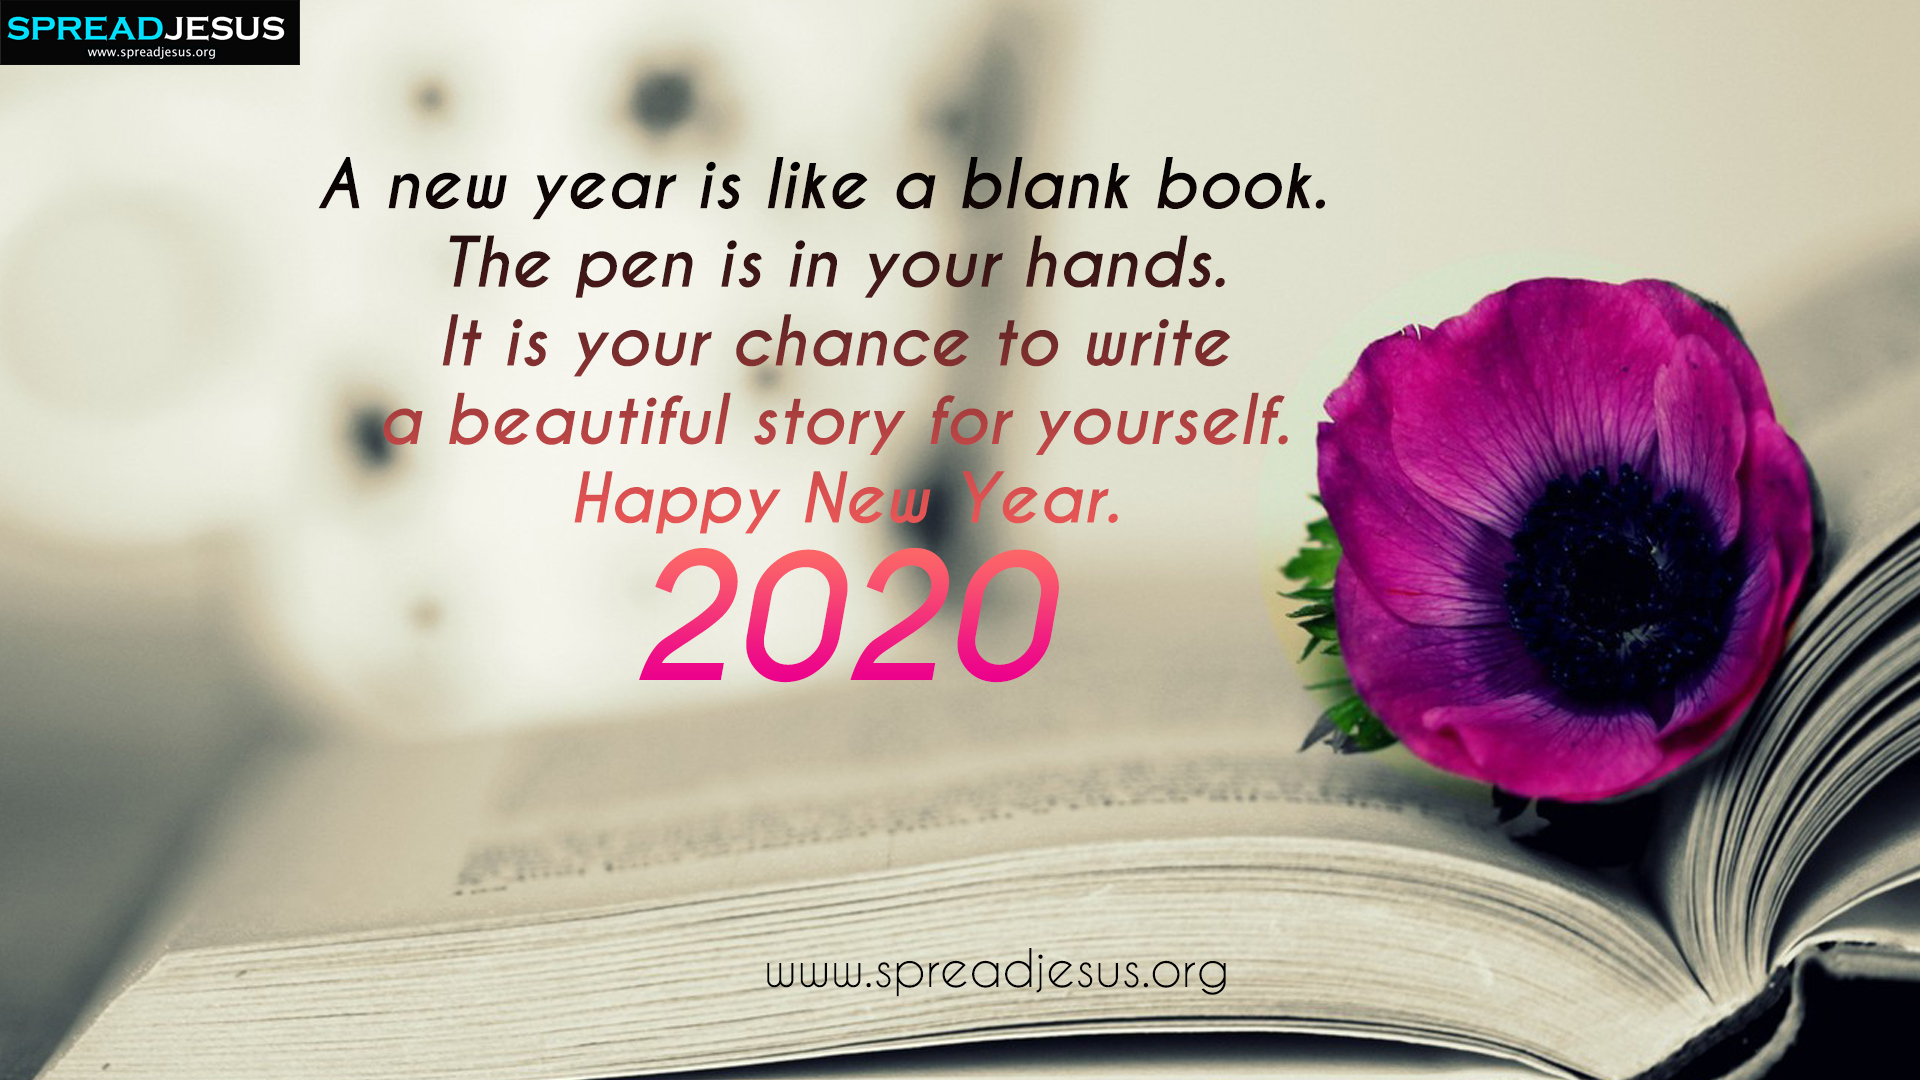 Happy New Year 2020 Hd Wallpapers 6 Free Download